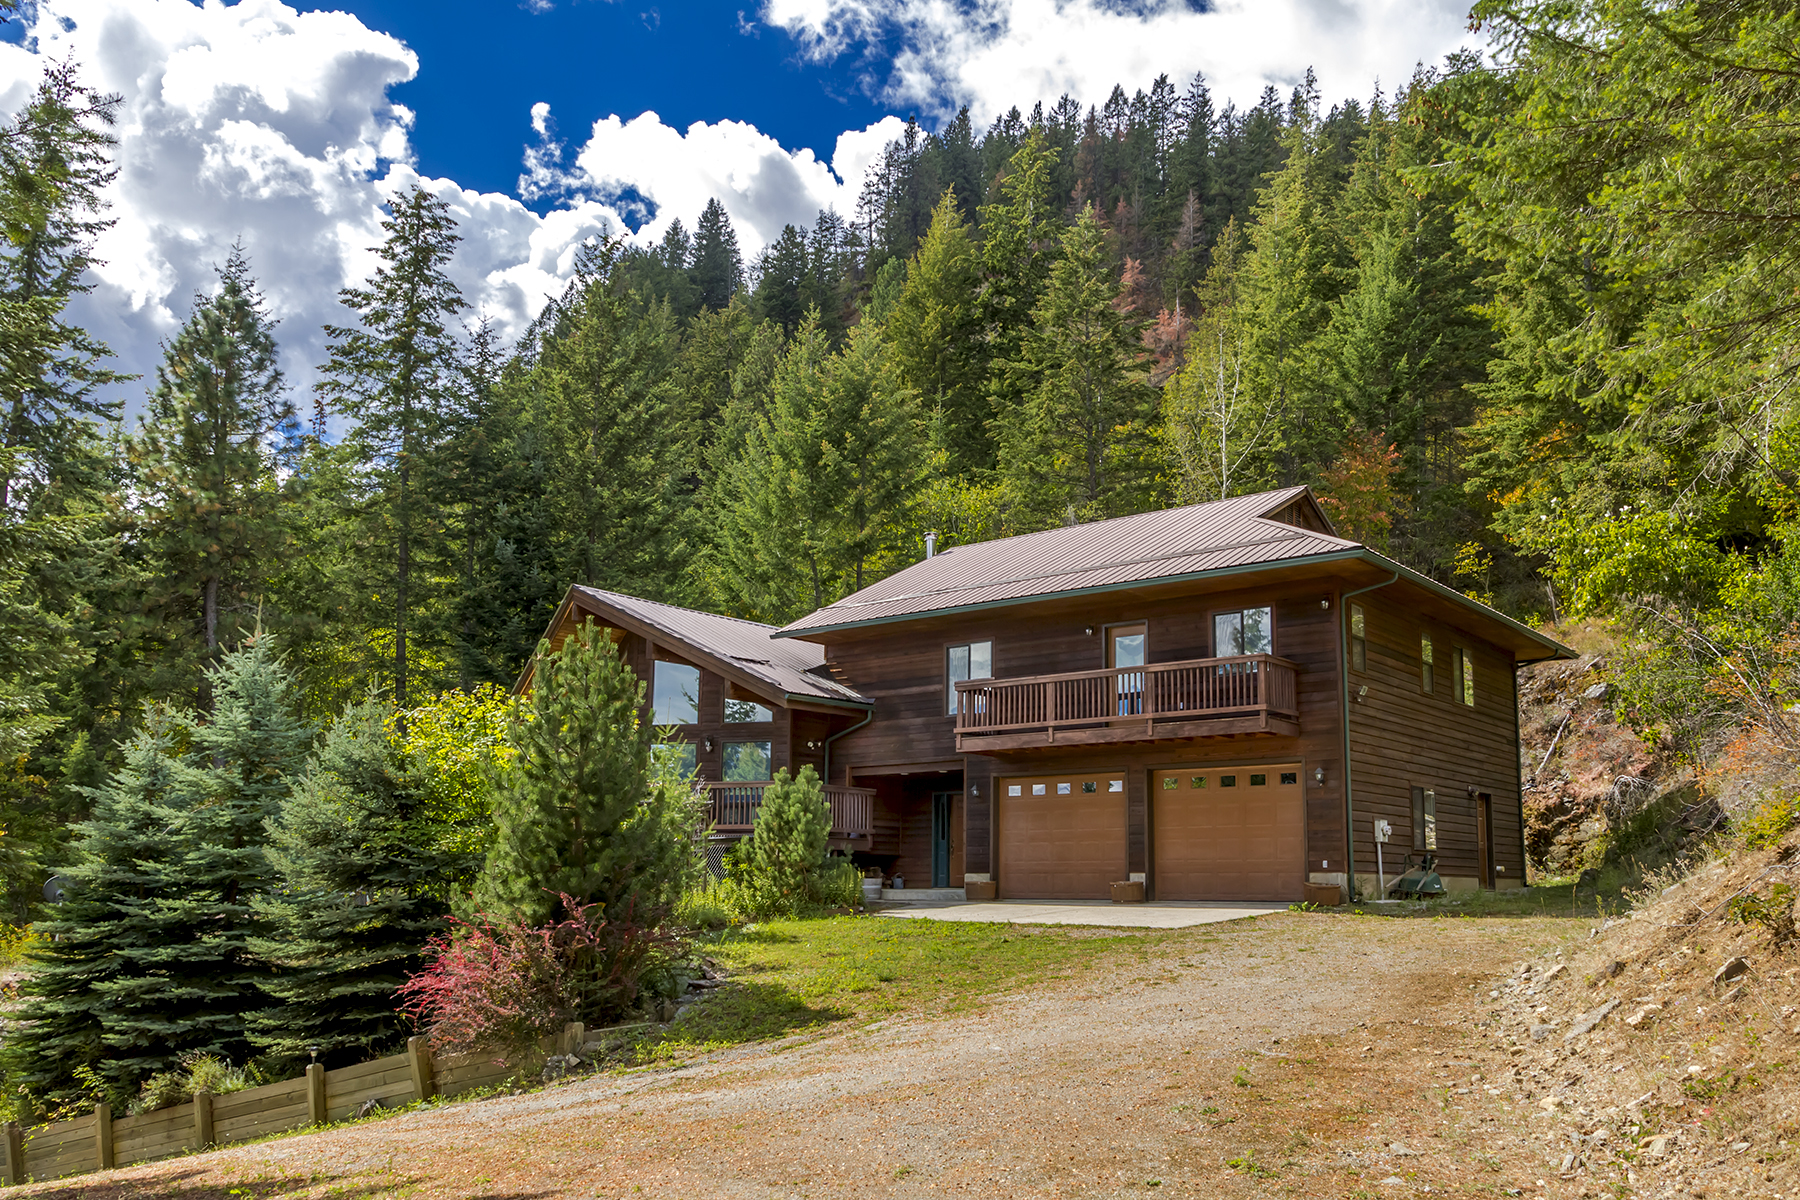 Casa Unifamiliar por un Venta en Beautiful Lake Pend Oreille Views 905 Midas Drive Sagle, Idaho, 83860 Estados Unidos